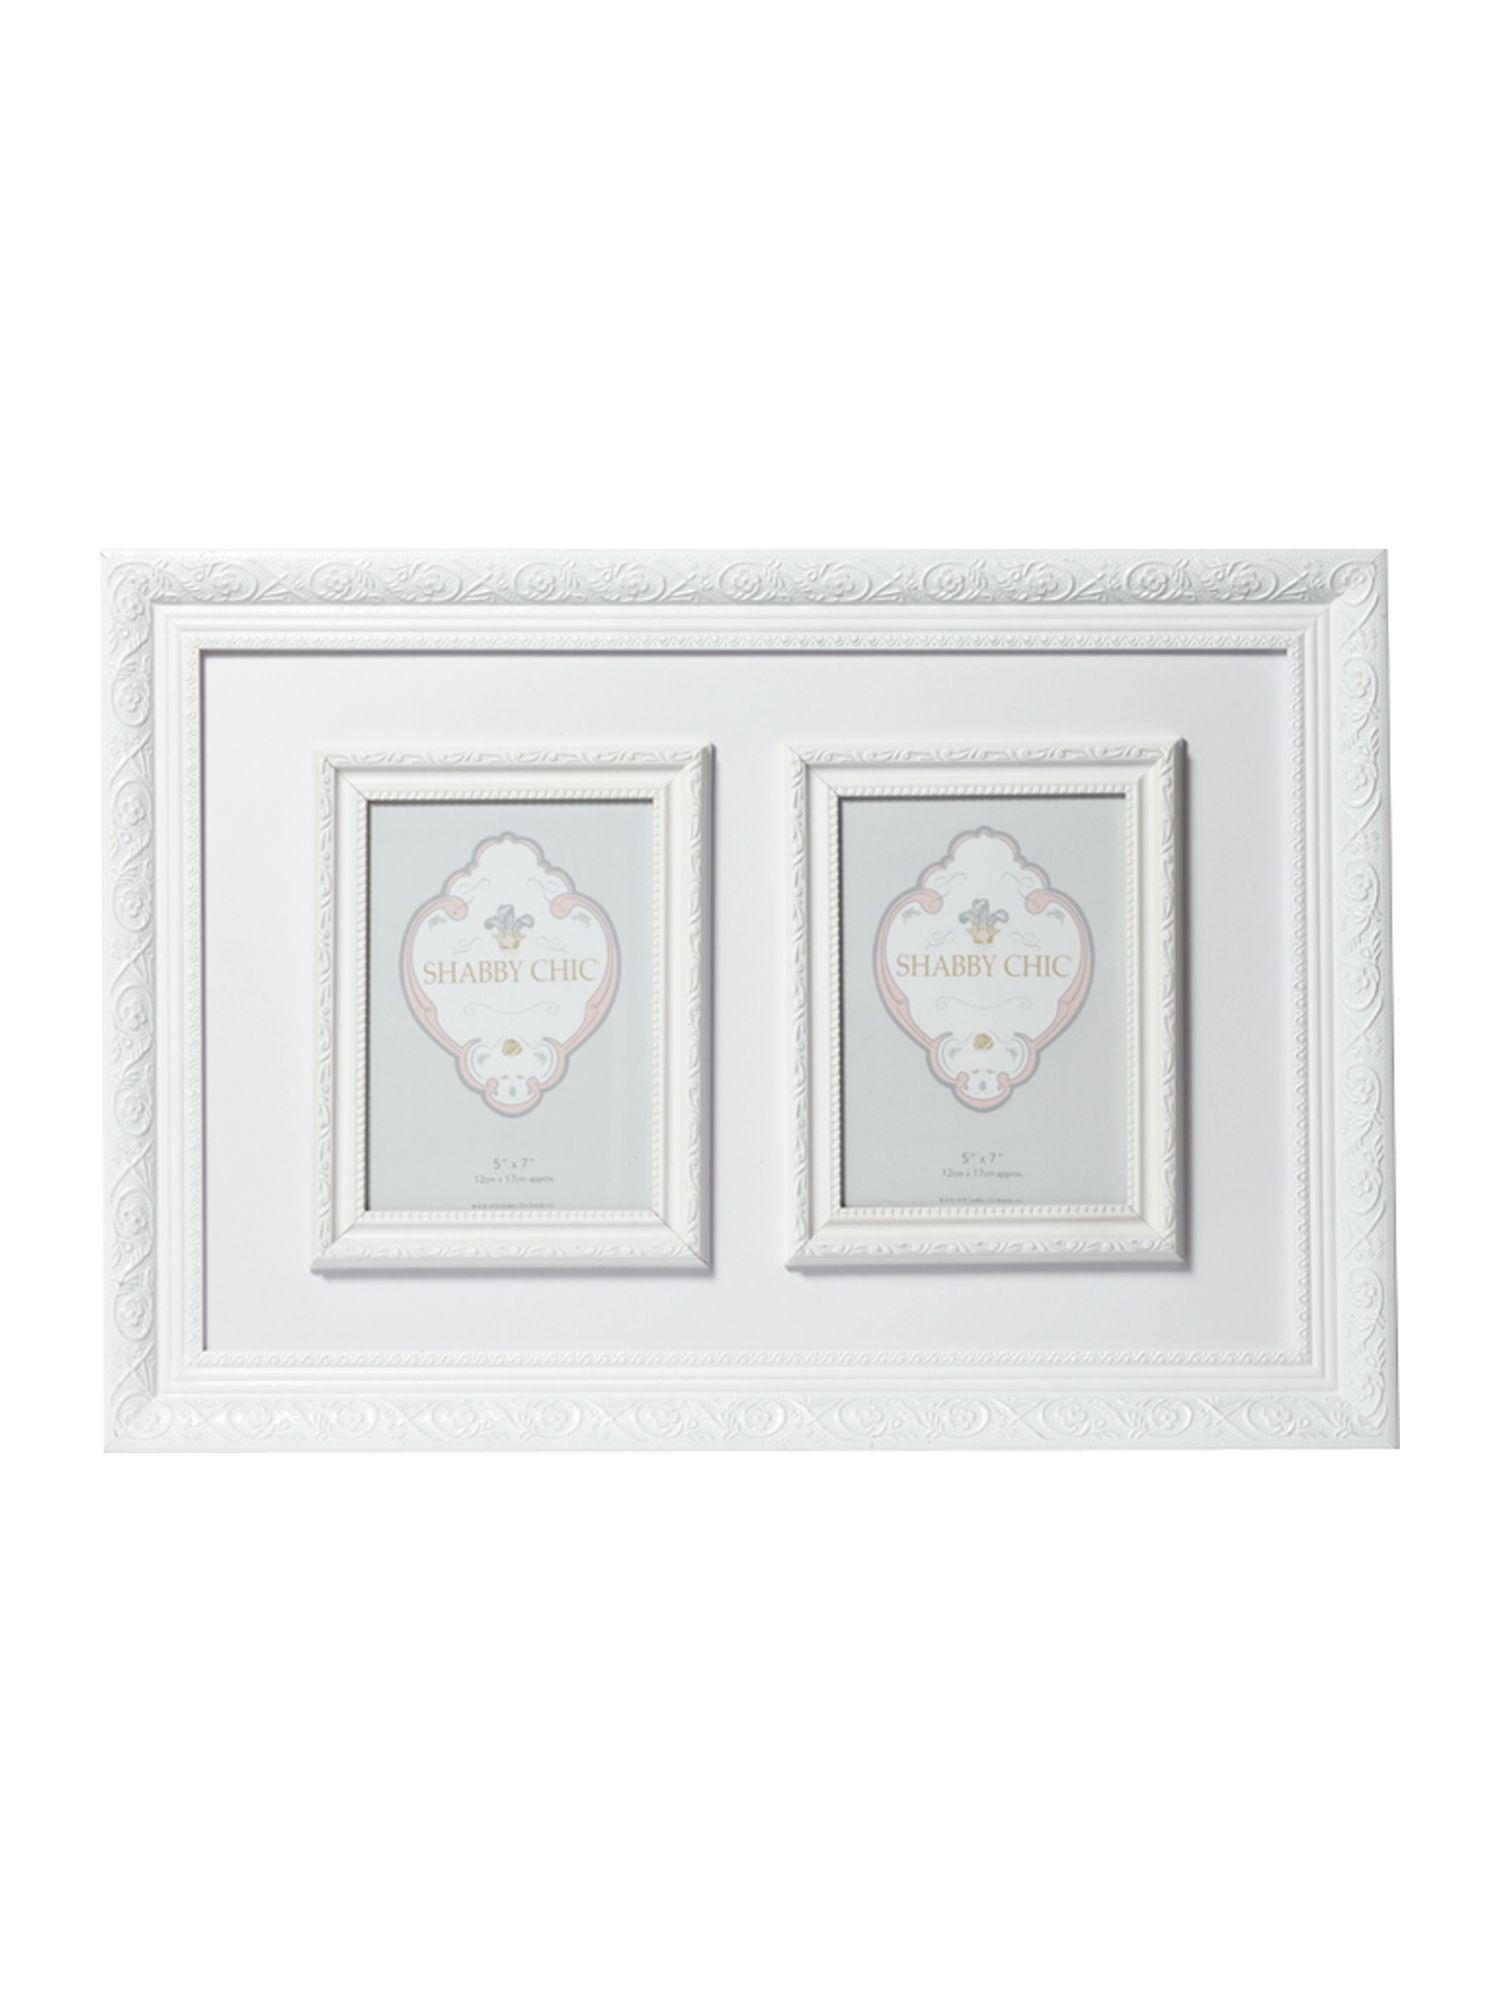 White double aperture photo frame